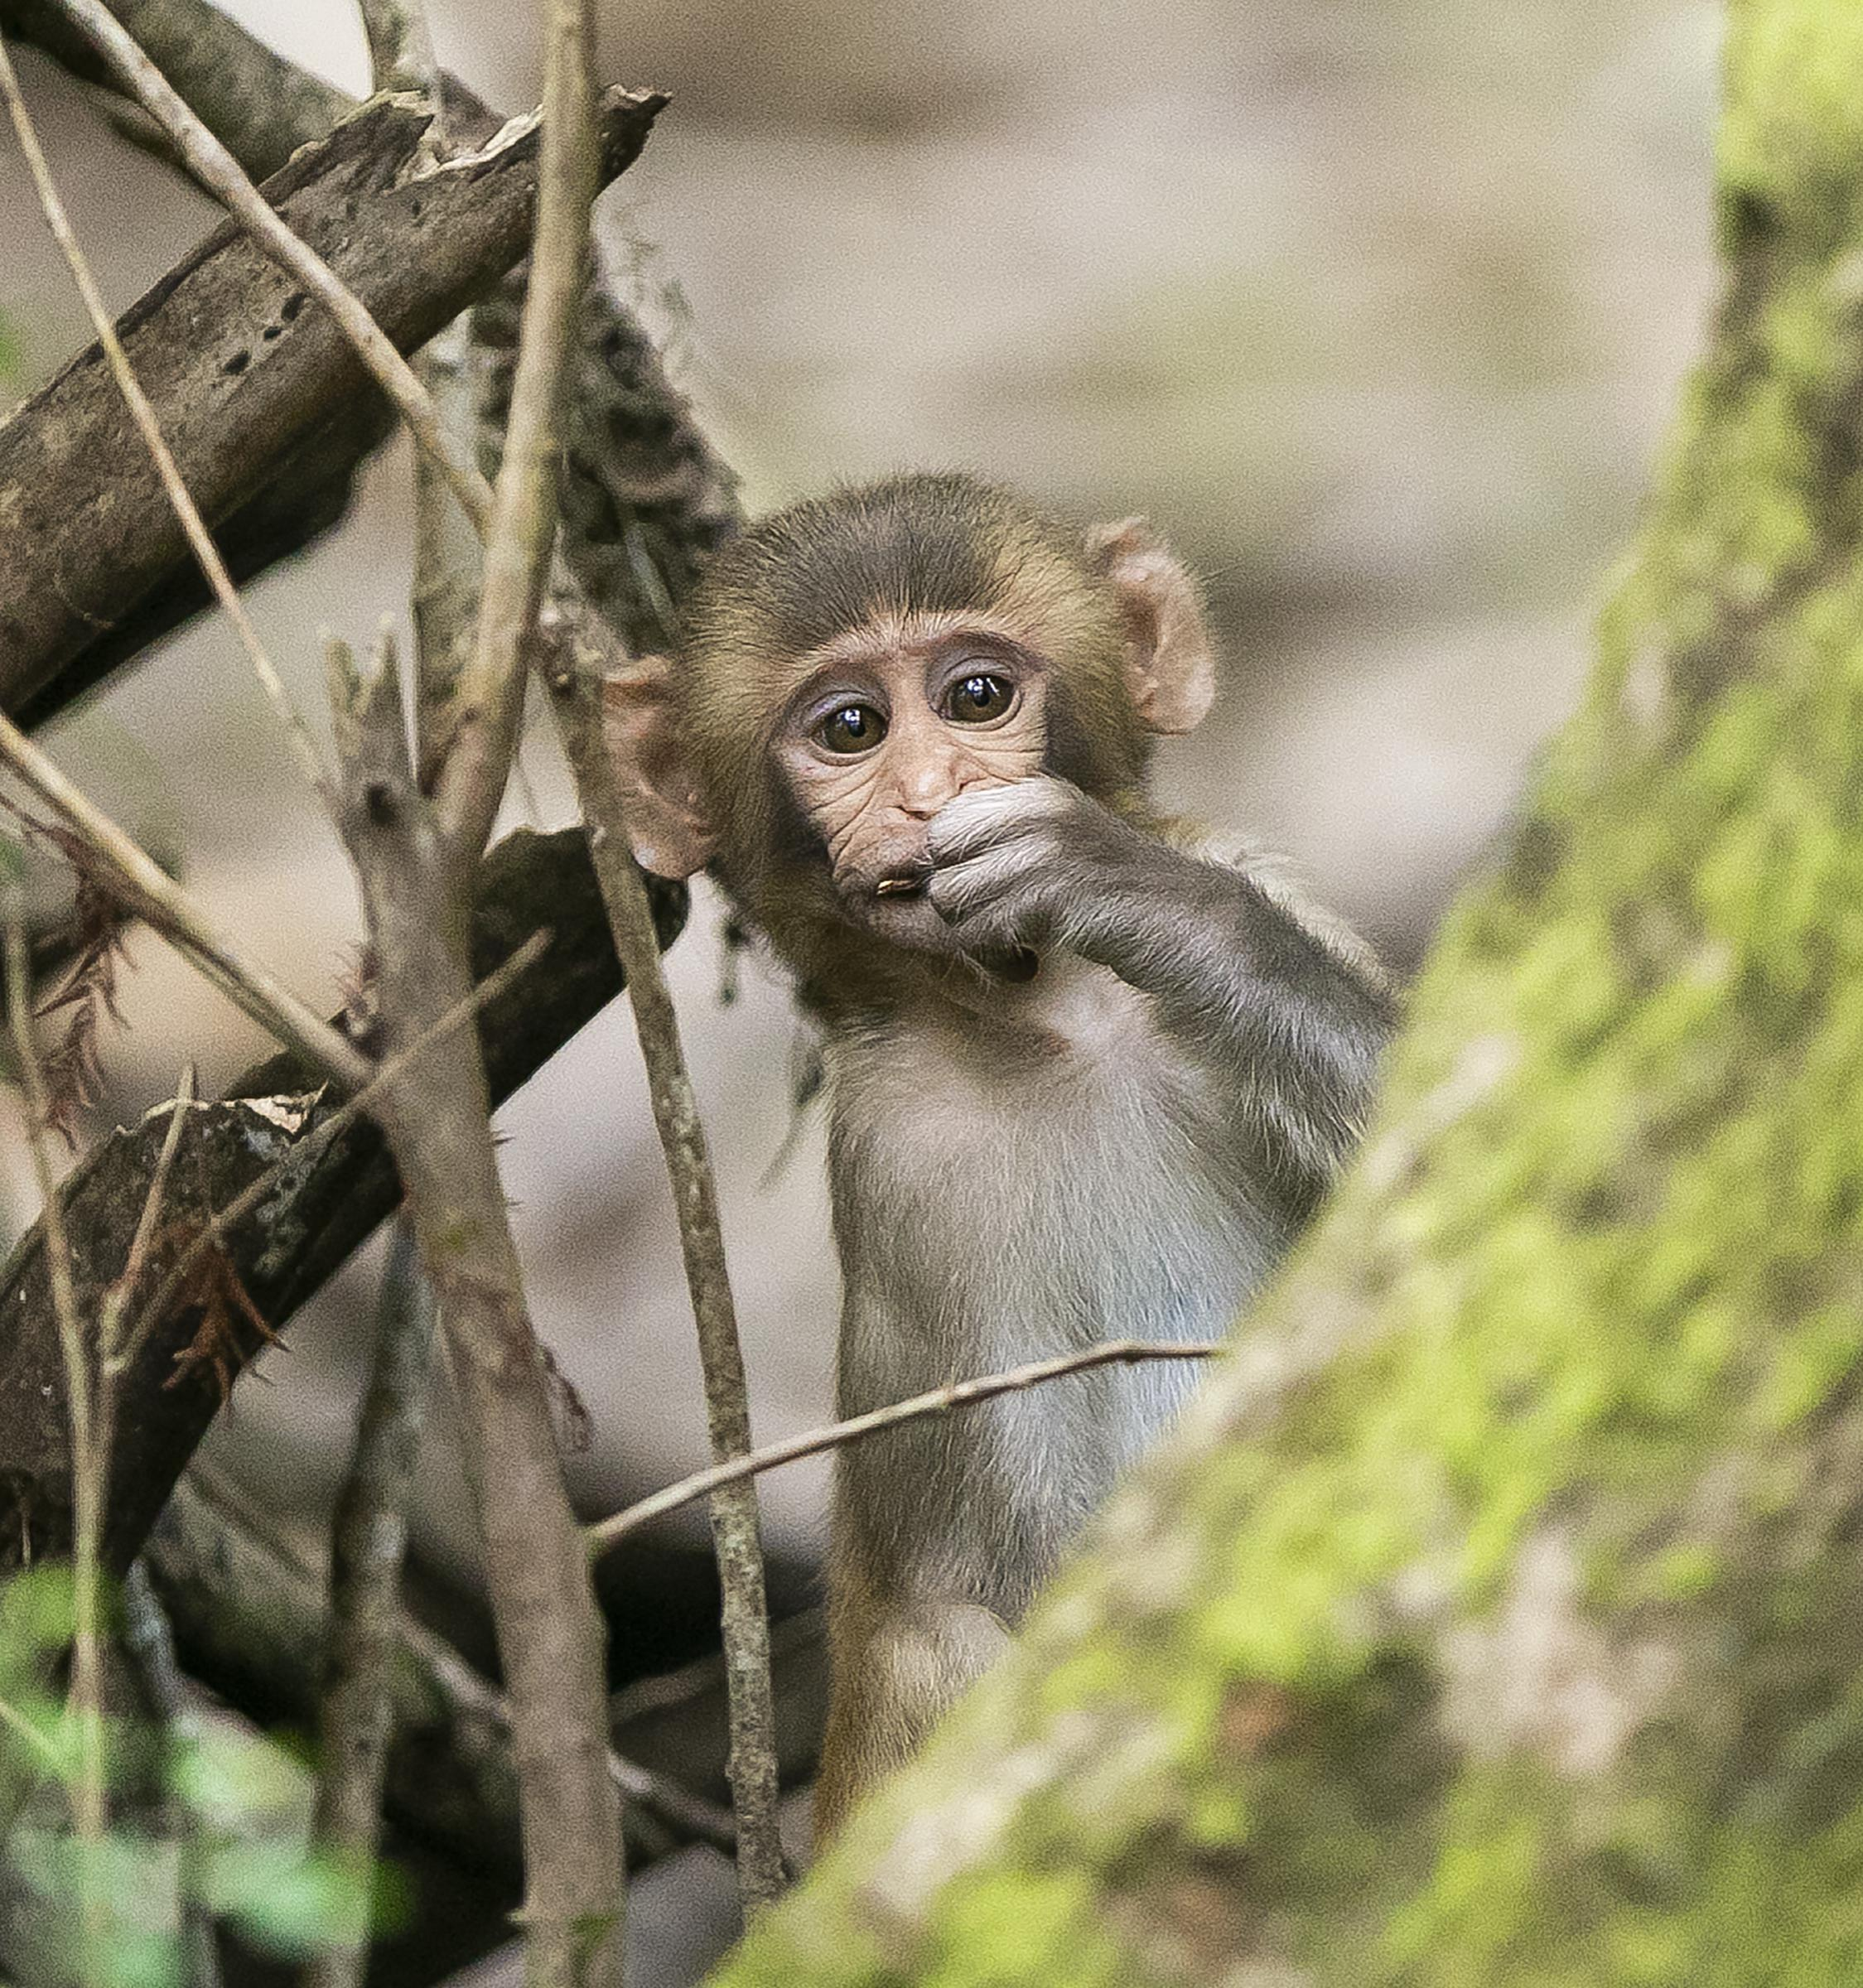 Herpes-carrying monkeys brought to Florida for tourism may multiply out of control